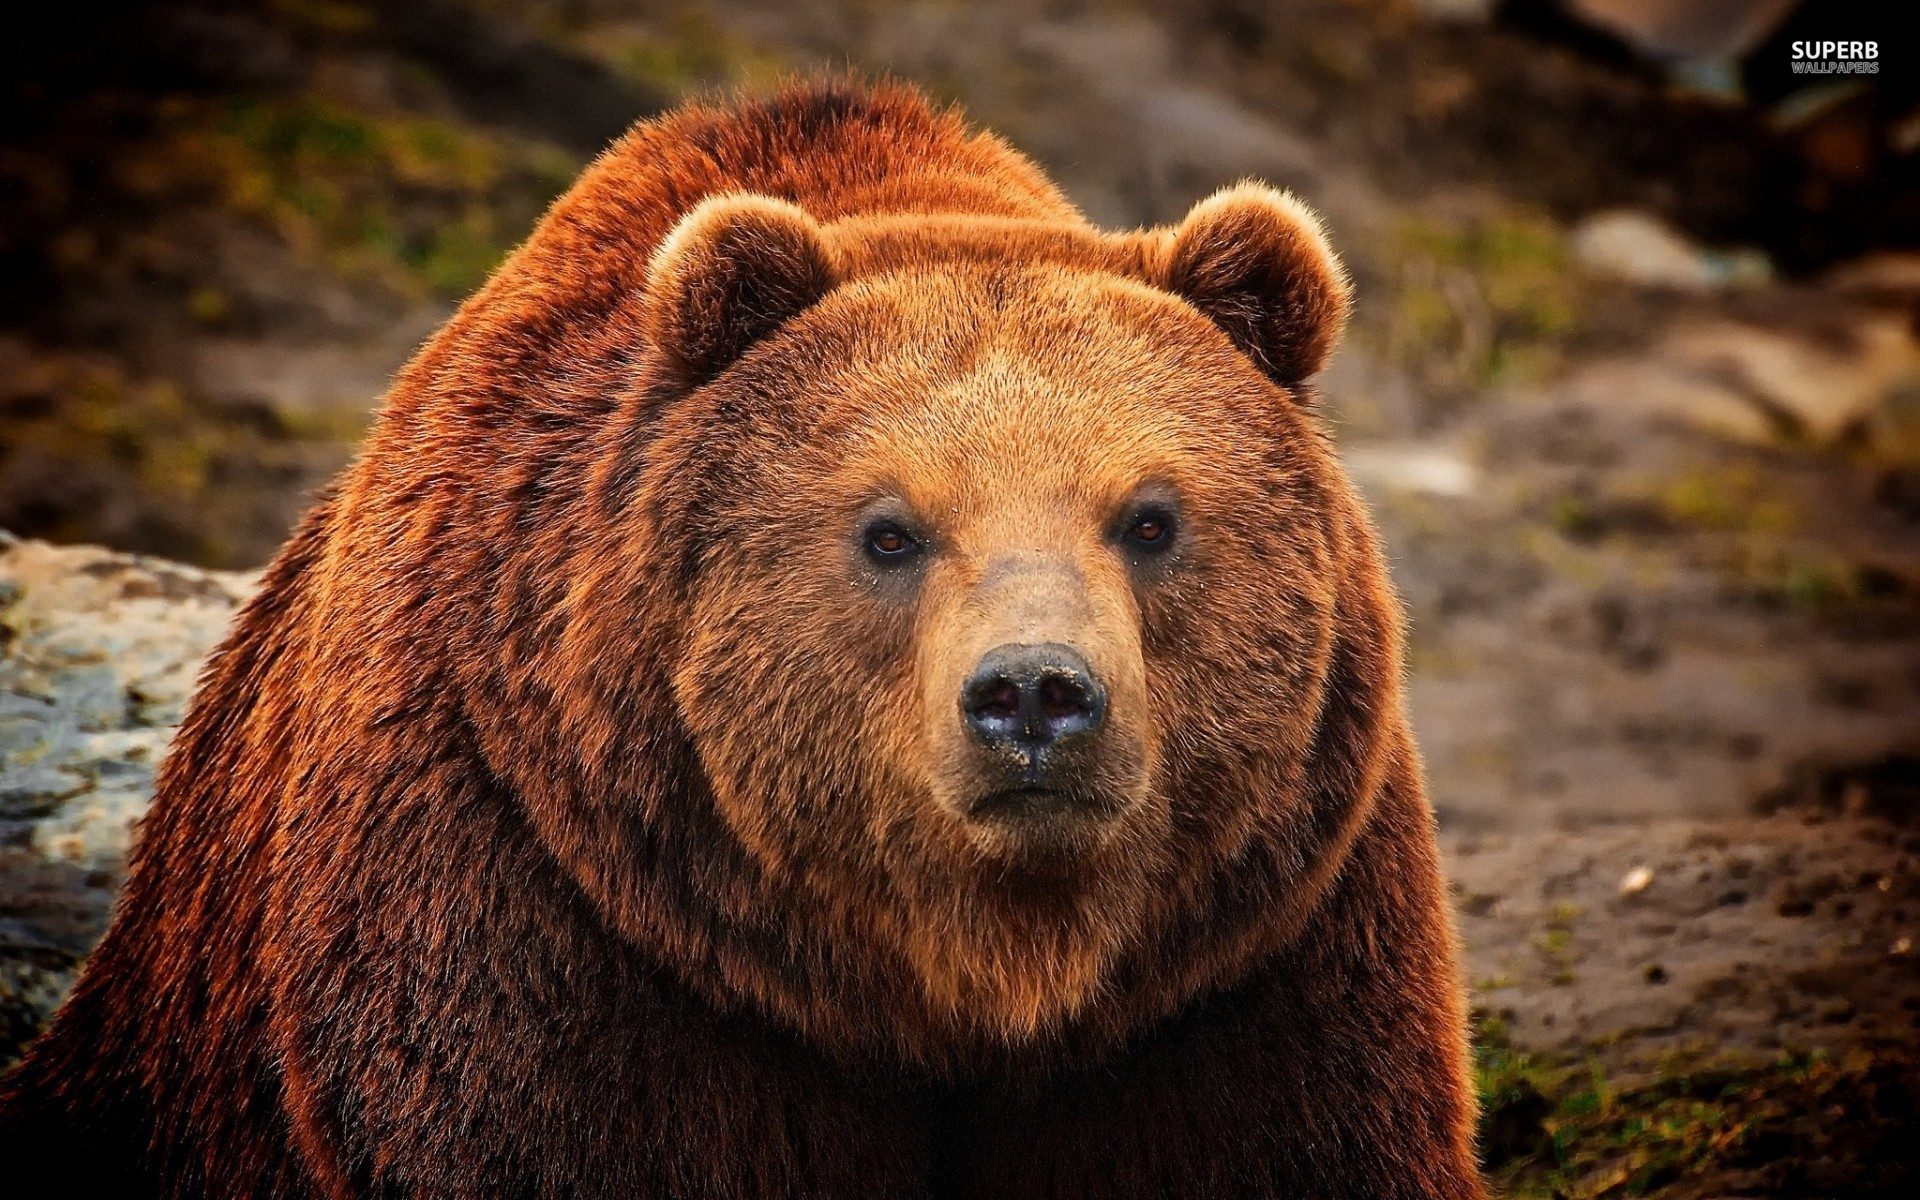 grizzly bears | the late bloomer hiker - photo#1